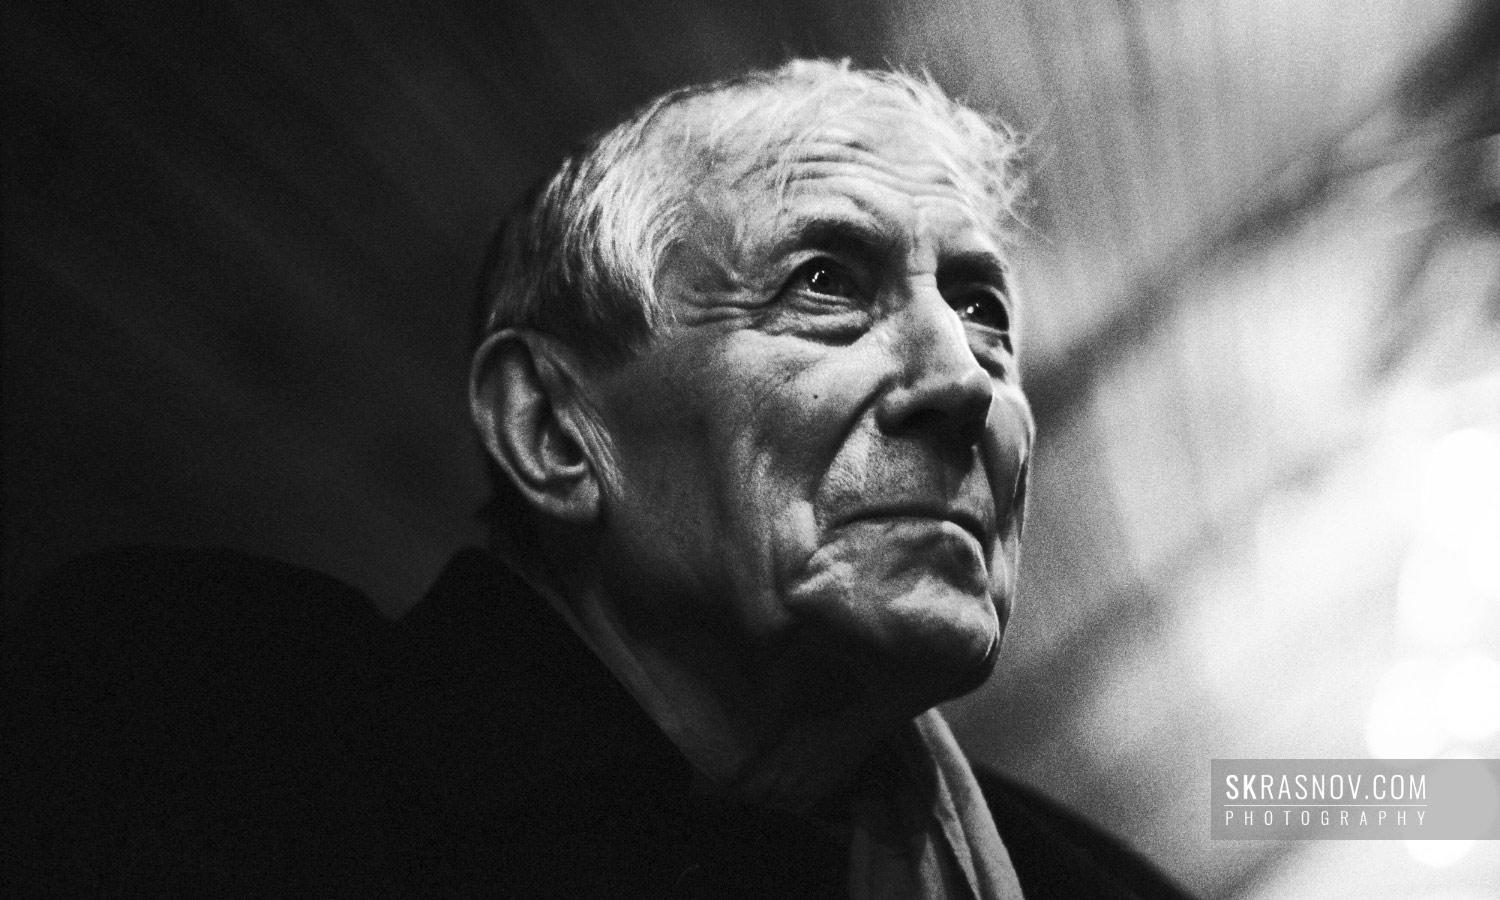 Yevgeny Yevtushenko. Poet of the Khrushchev thaw. Евгений Евтушенко, поэт © Sasha Krasnov - Portrait Photographer